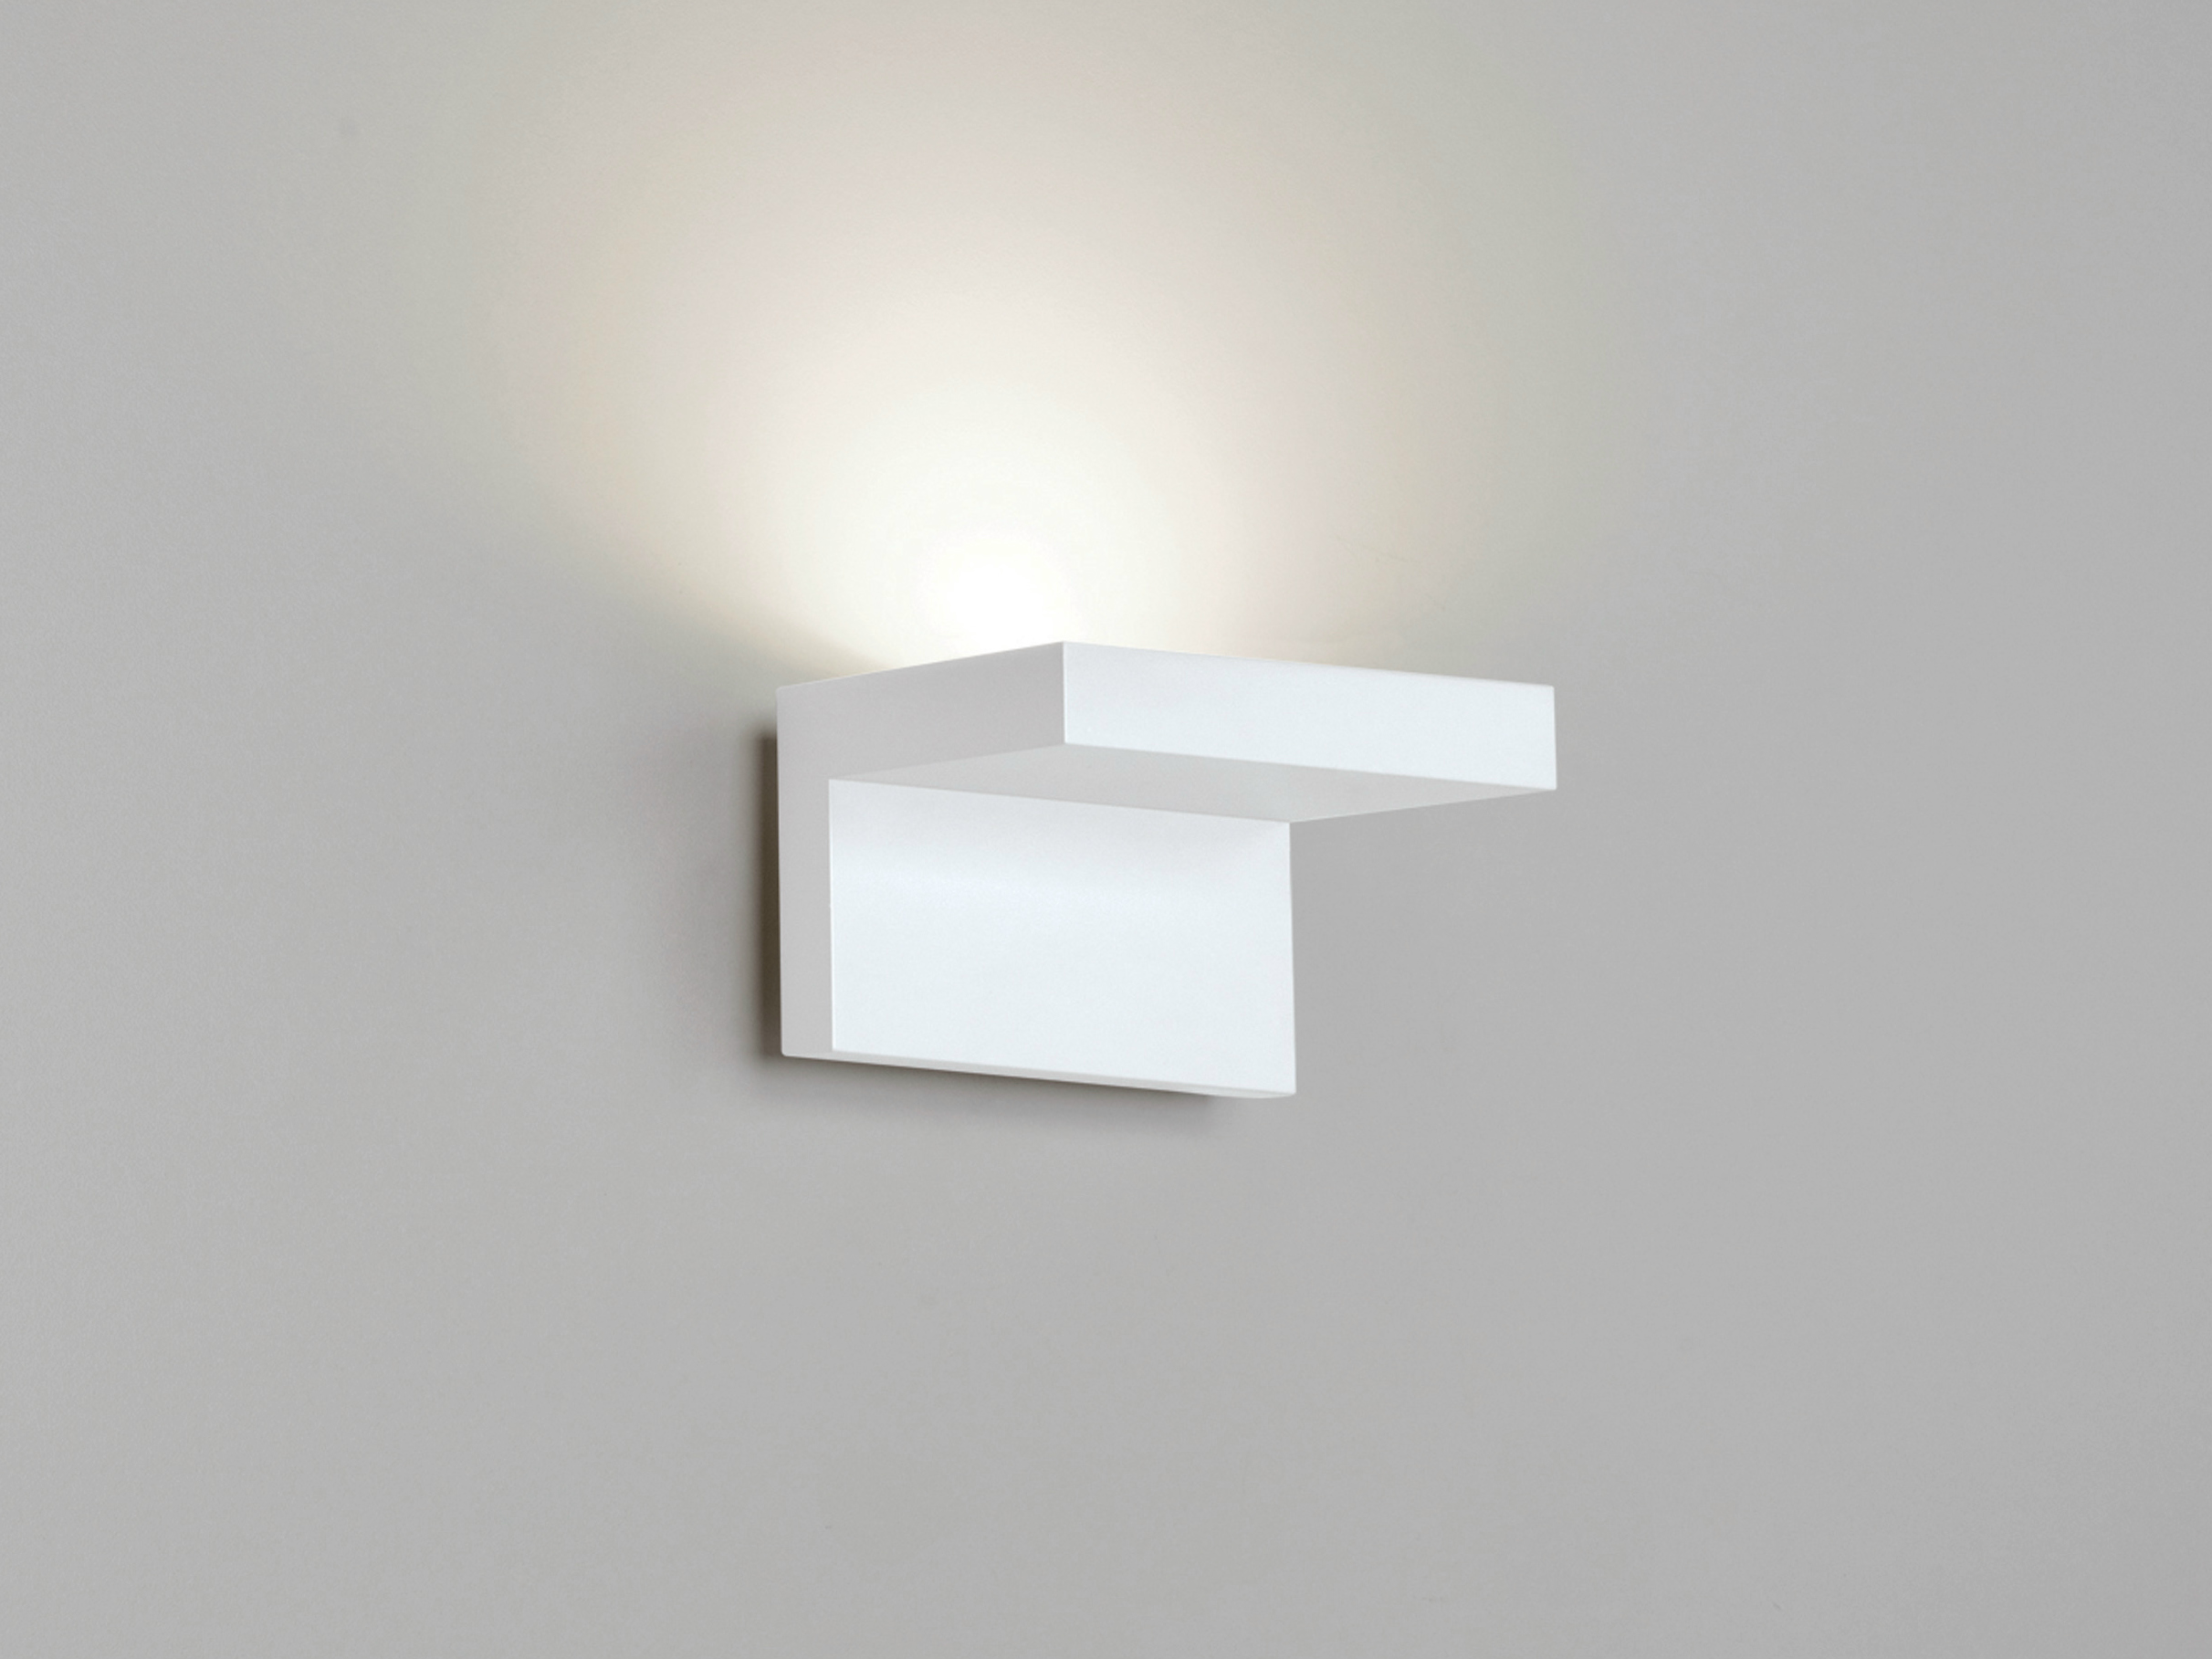 design led indirect light wall light step w0 by rotaliana. Black Bedroom Furniture Sets. Home Design Ideas